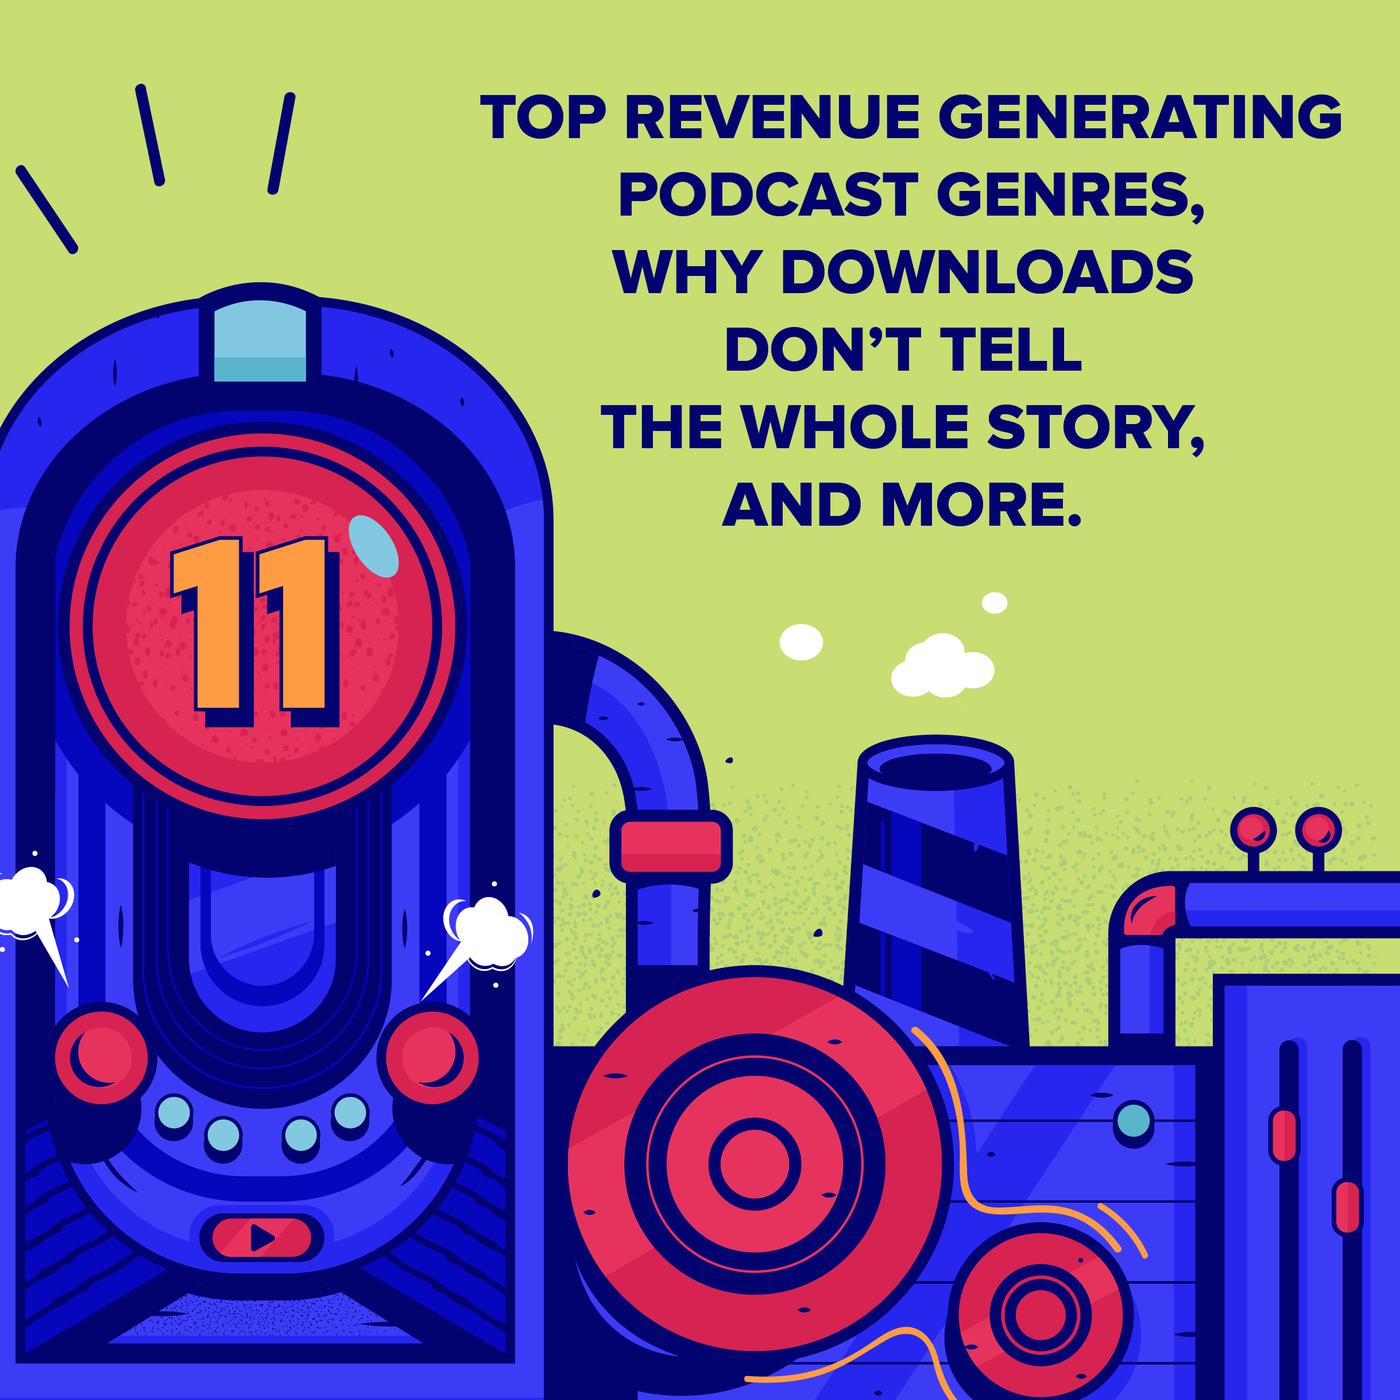 Episode 11 (TWIP) - Top Revenue Generating Podcast Genres, Why Downloads Don't tell the Whole Story, and More.